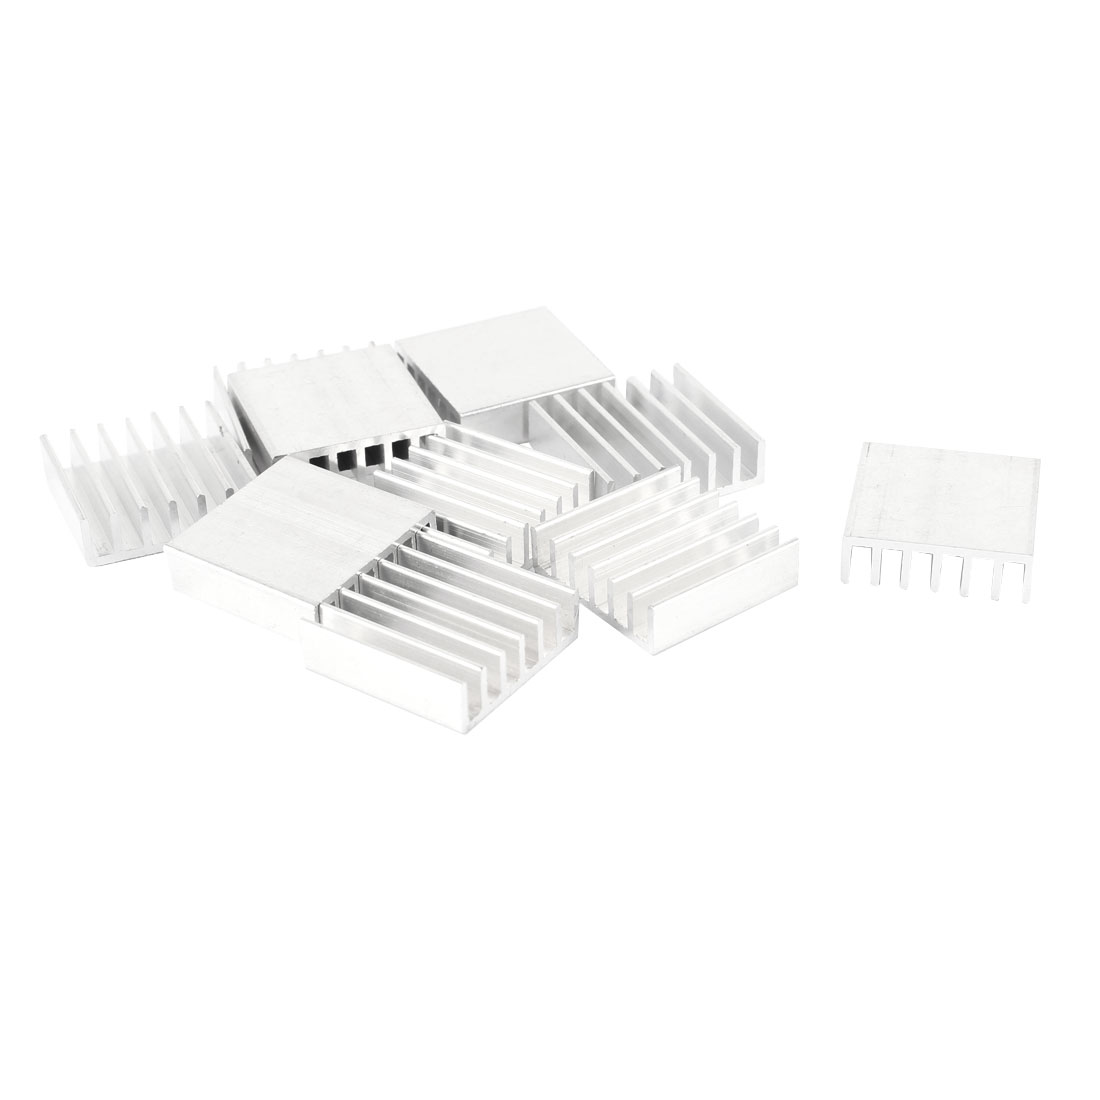 10pcs Aluminum Heatsink Cooling Fin 20mm x 20mm x 6mm for Power Transistor